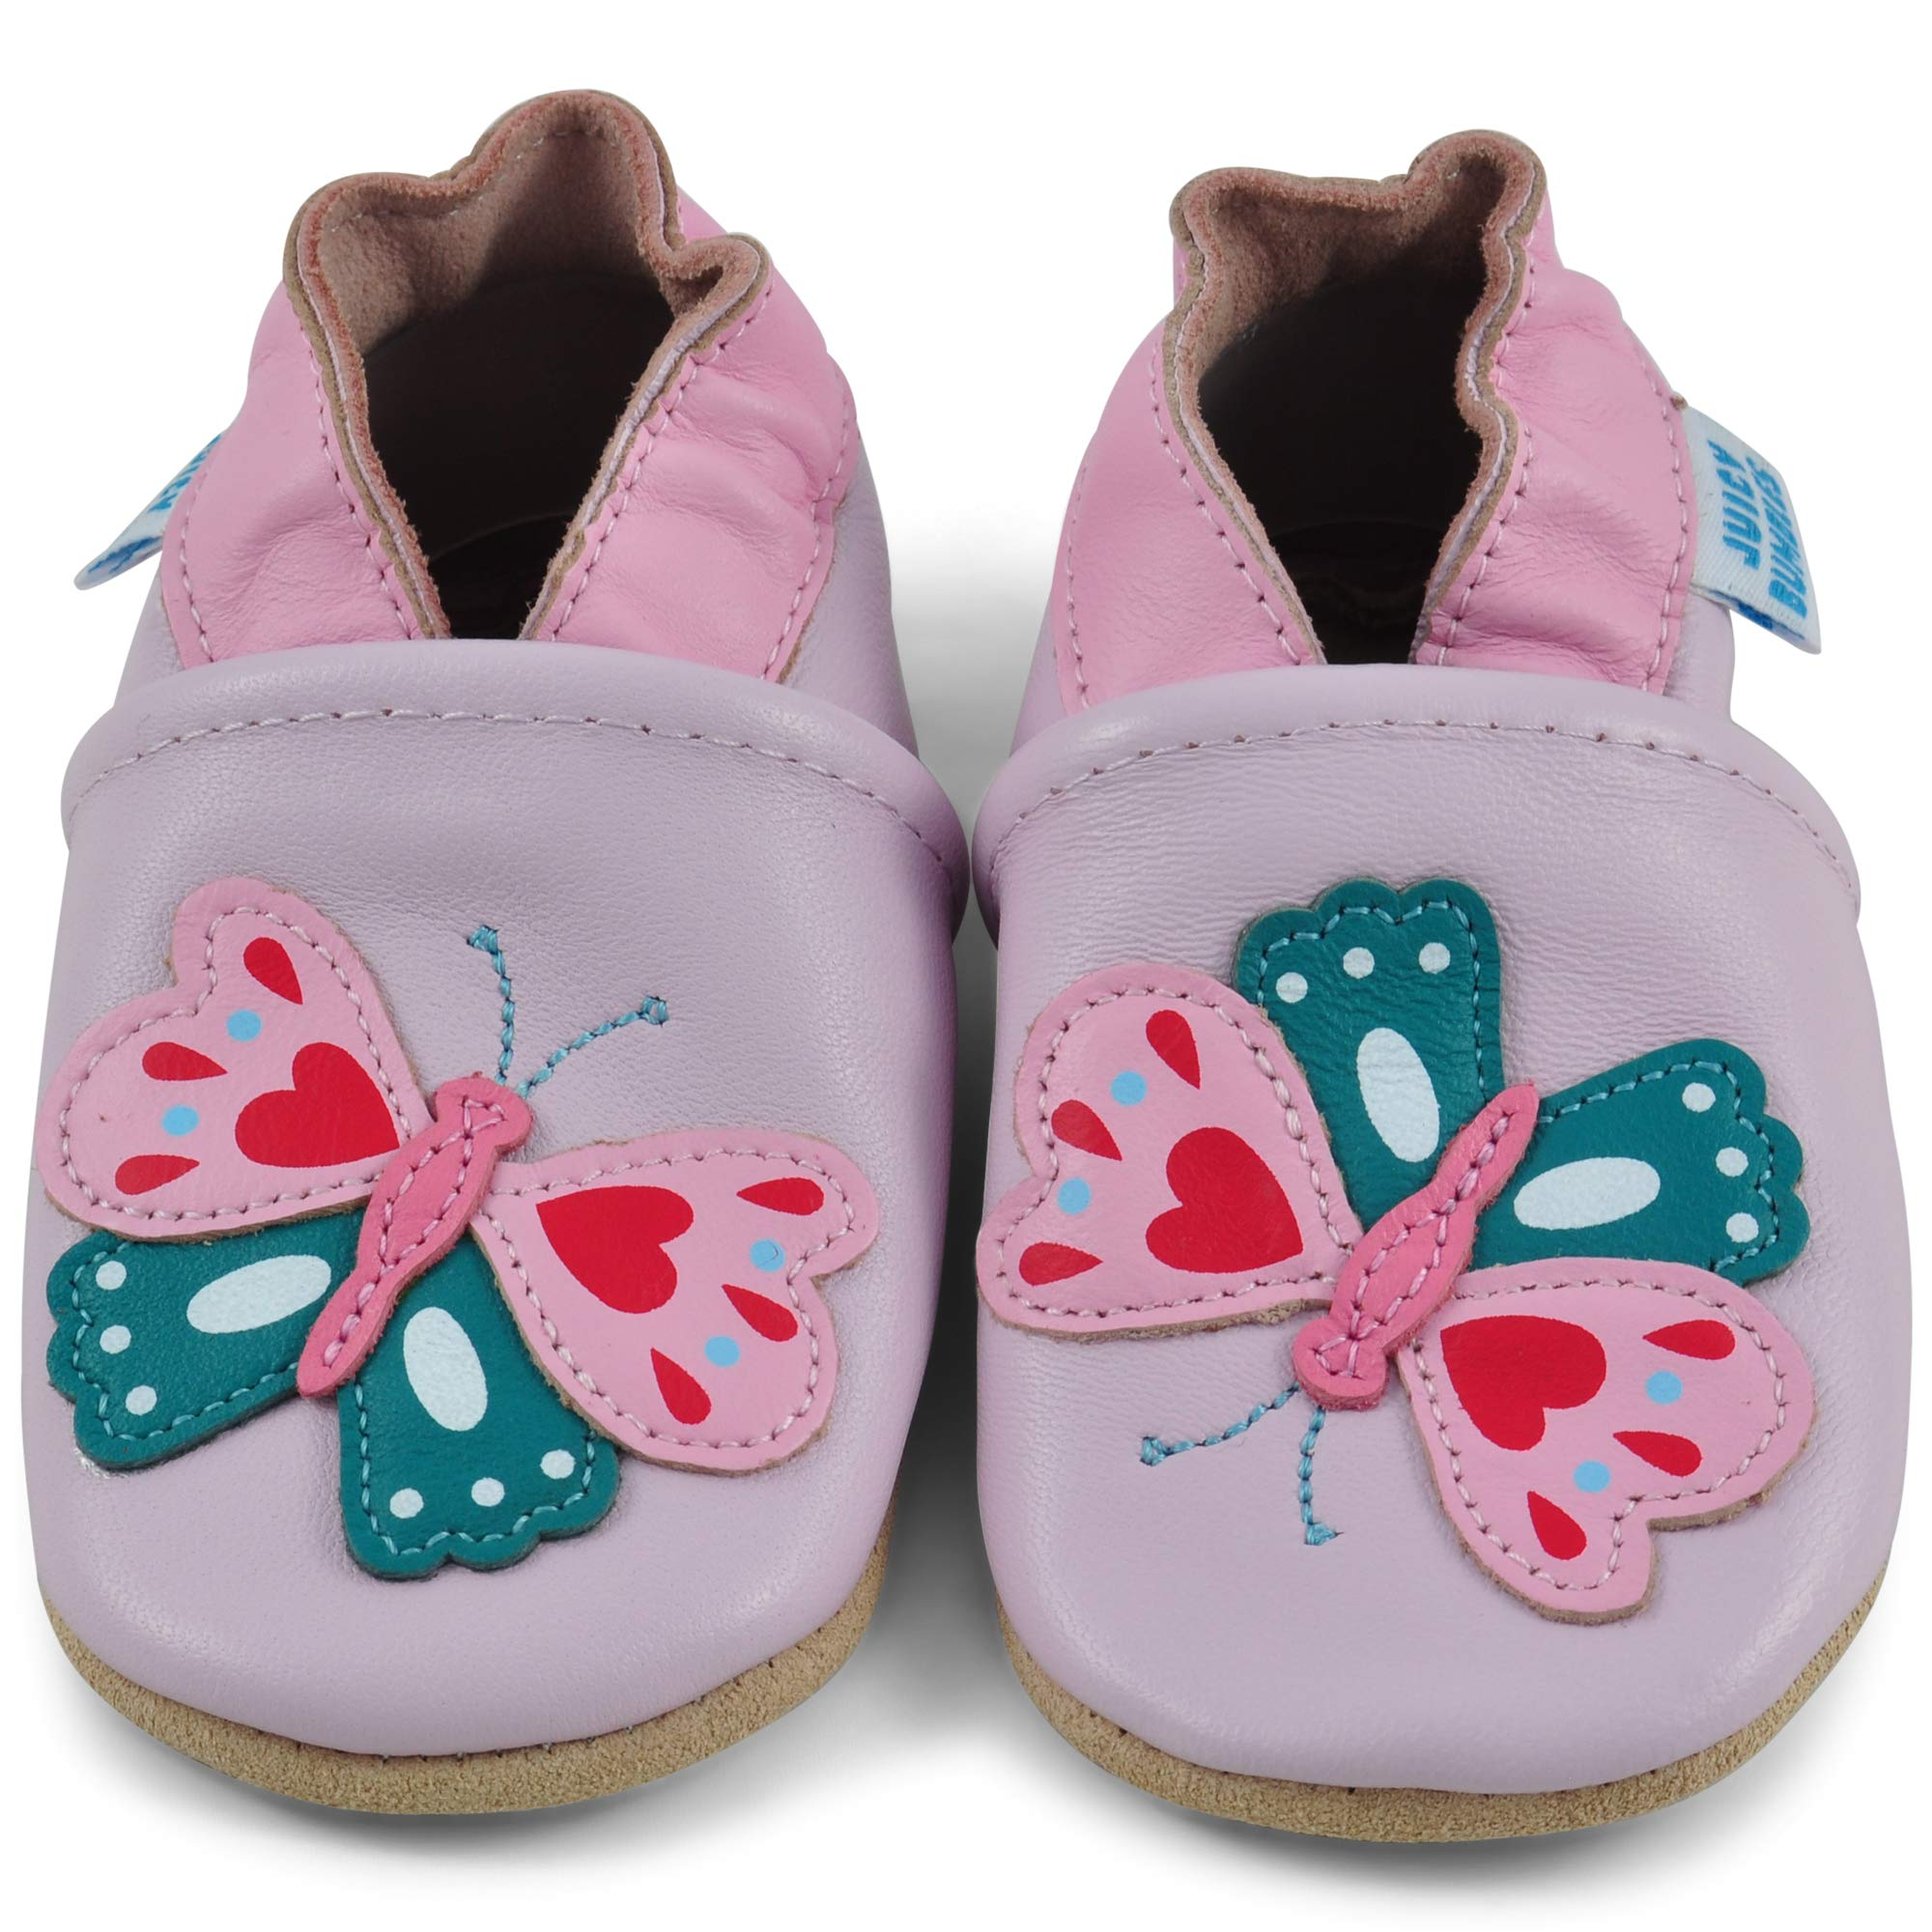 Soft Sole Leather Baby Shoes - Baby Boy Shoes - Baby Girl ...